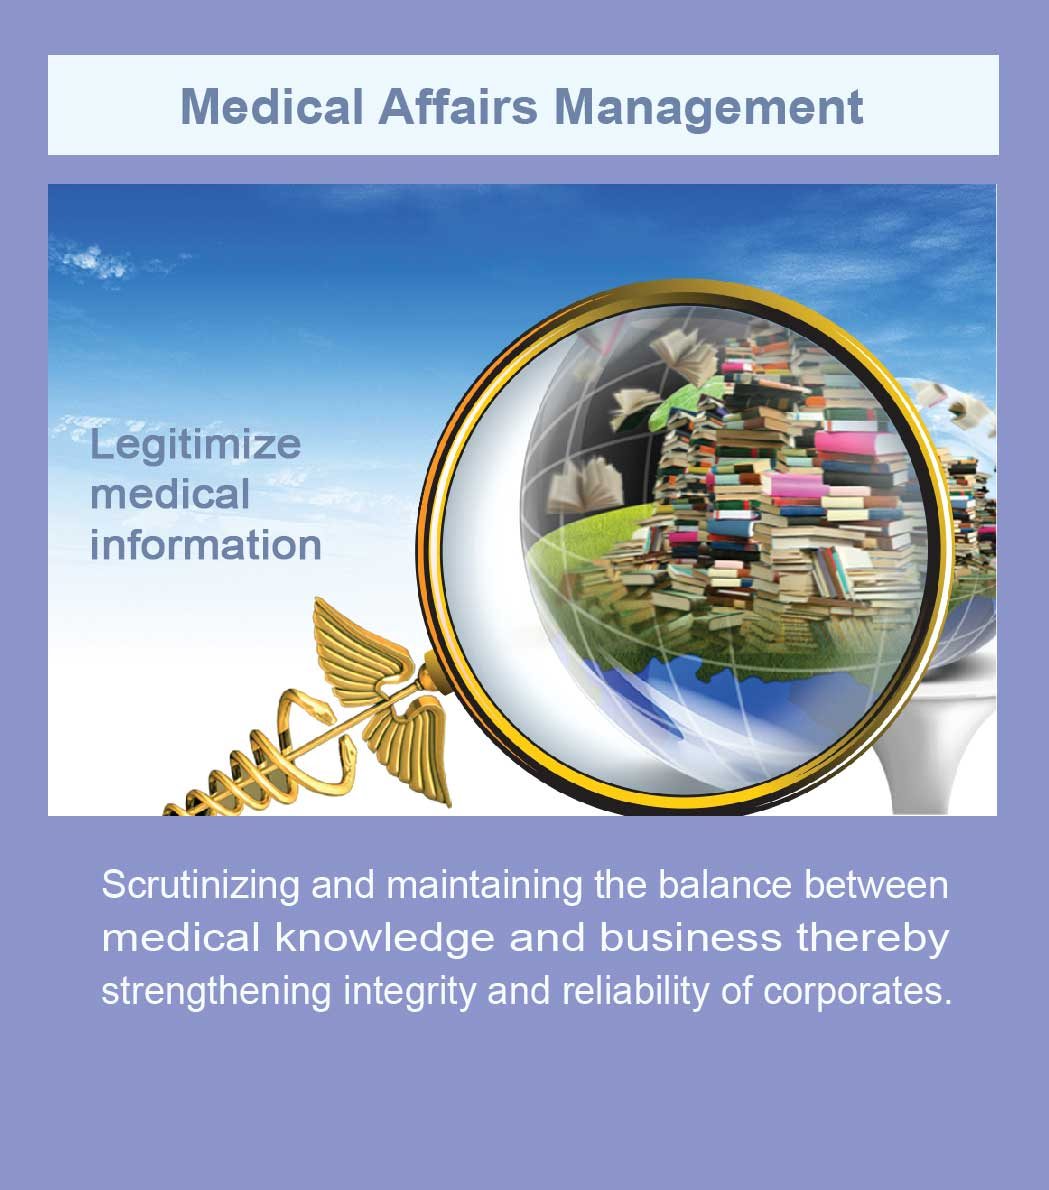 Medical Affairs Management